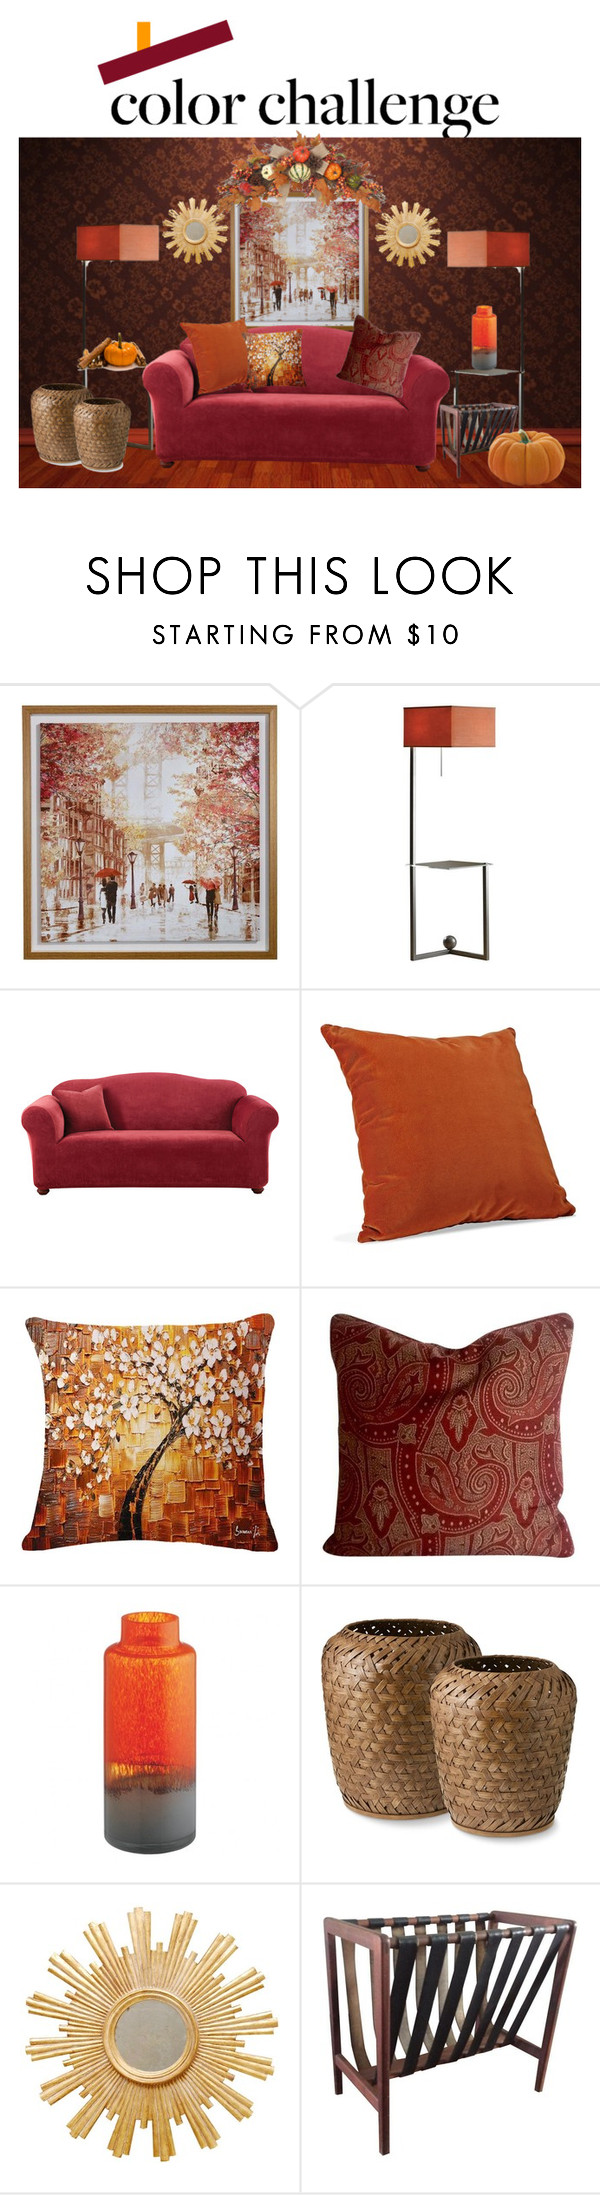 """Pumpkin & Burgundy"" by yvette-colon ❤ liked on Polyvore featuring interior, interiors, interior design, home, home decor, interior decorating, Hubbardton Forge, Sure Fit, Eddie Bauer and Worlds Away"